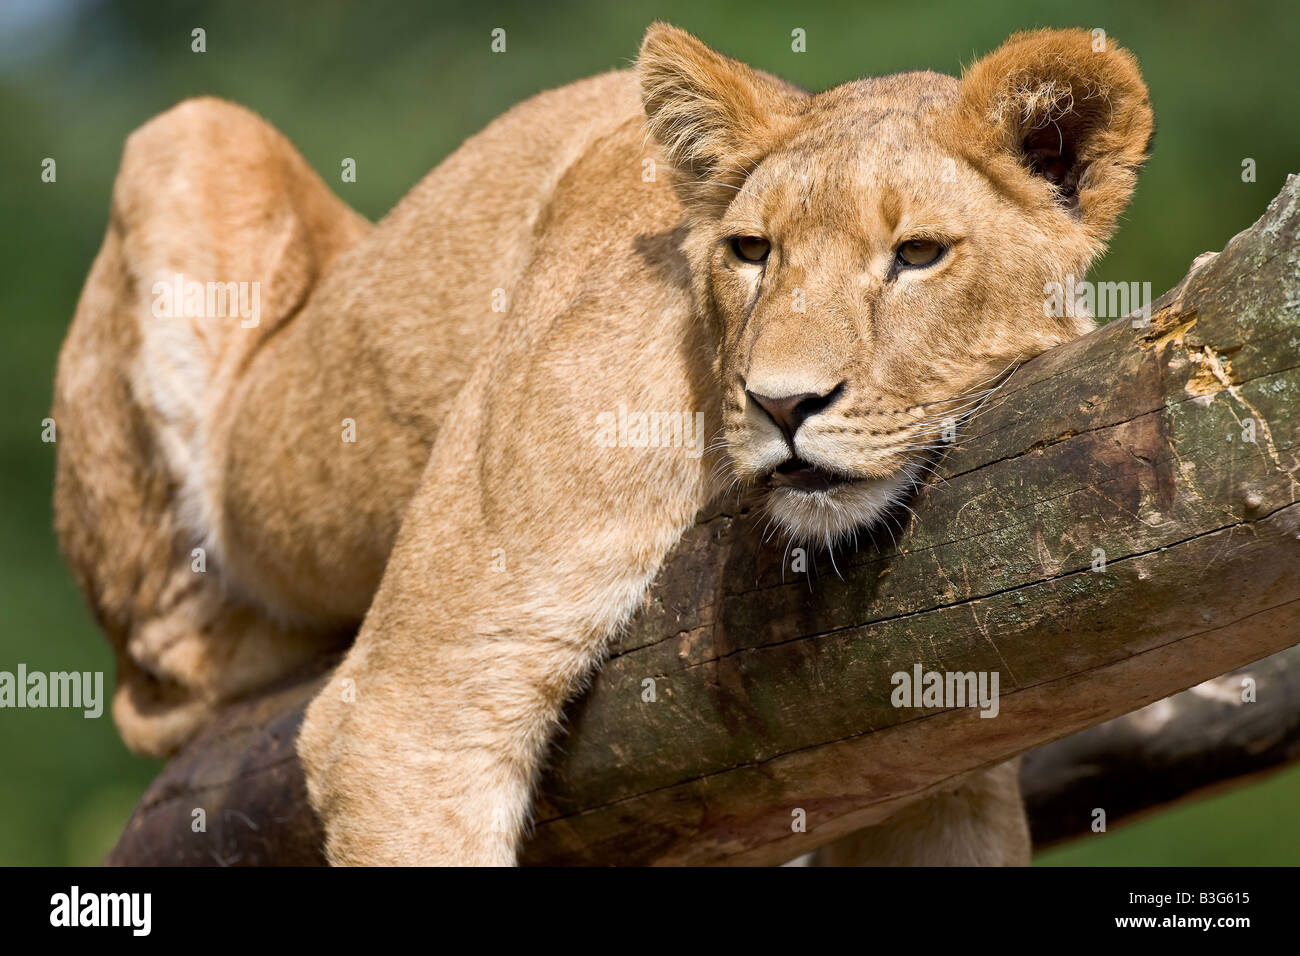 Jeune lion au repos Photo Stock